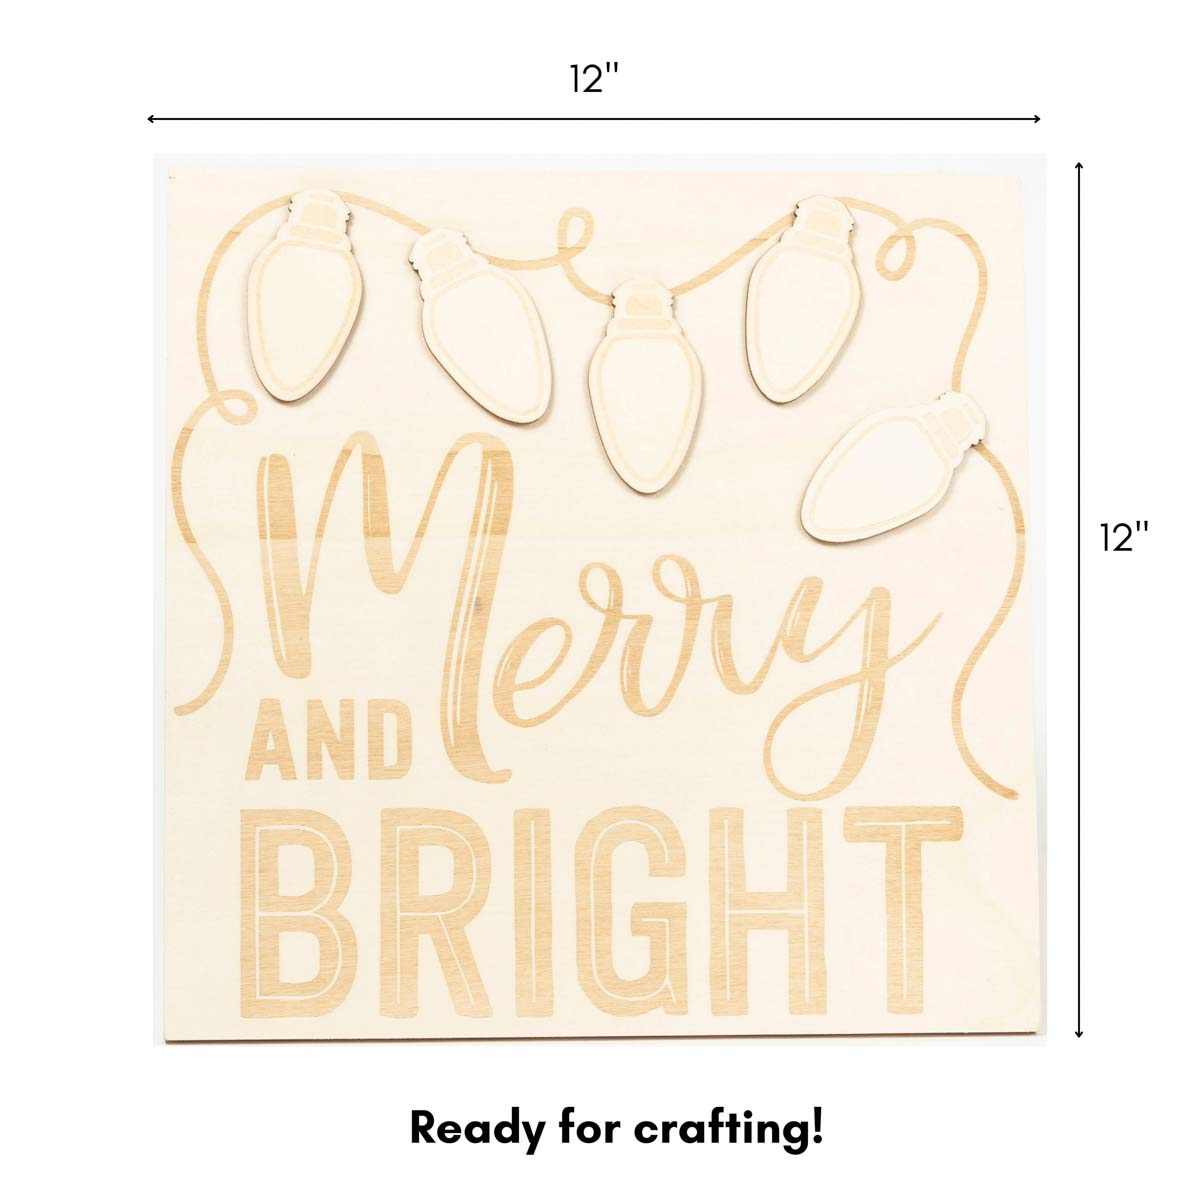 Plaid ® Wood Surfaces - Merry and Bright Celebration Frame and Plaque - 56979